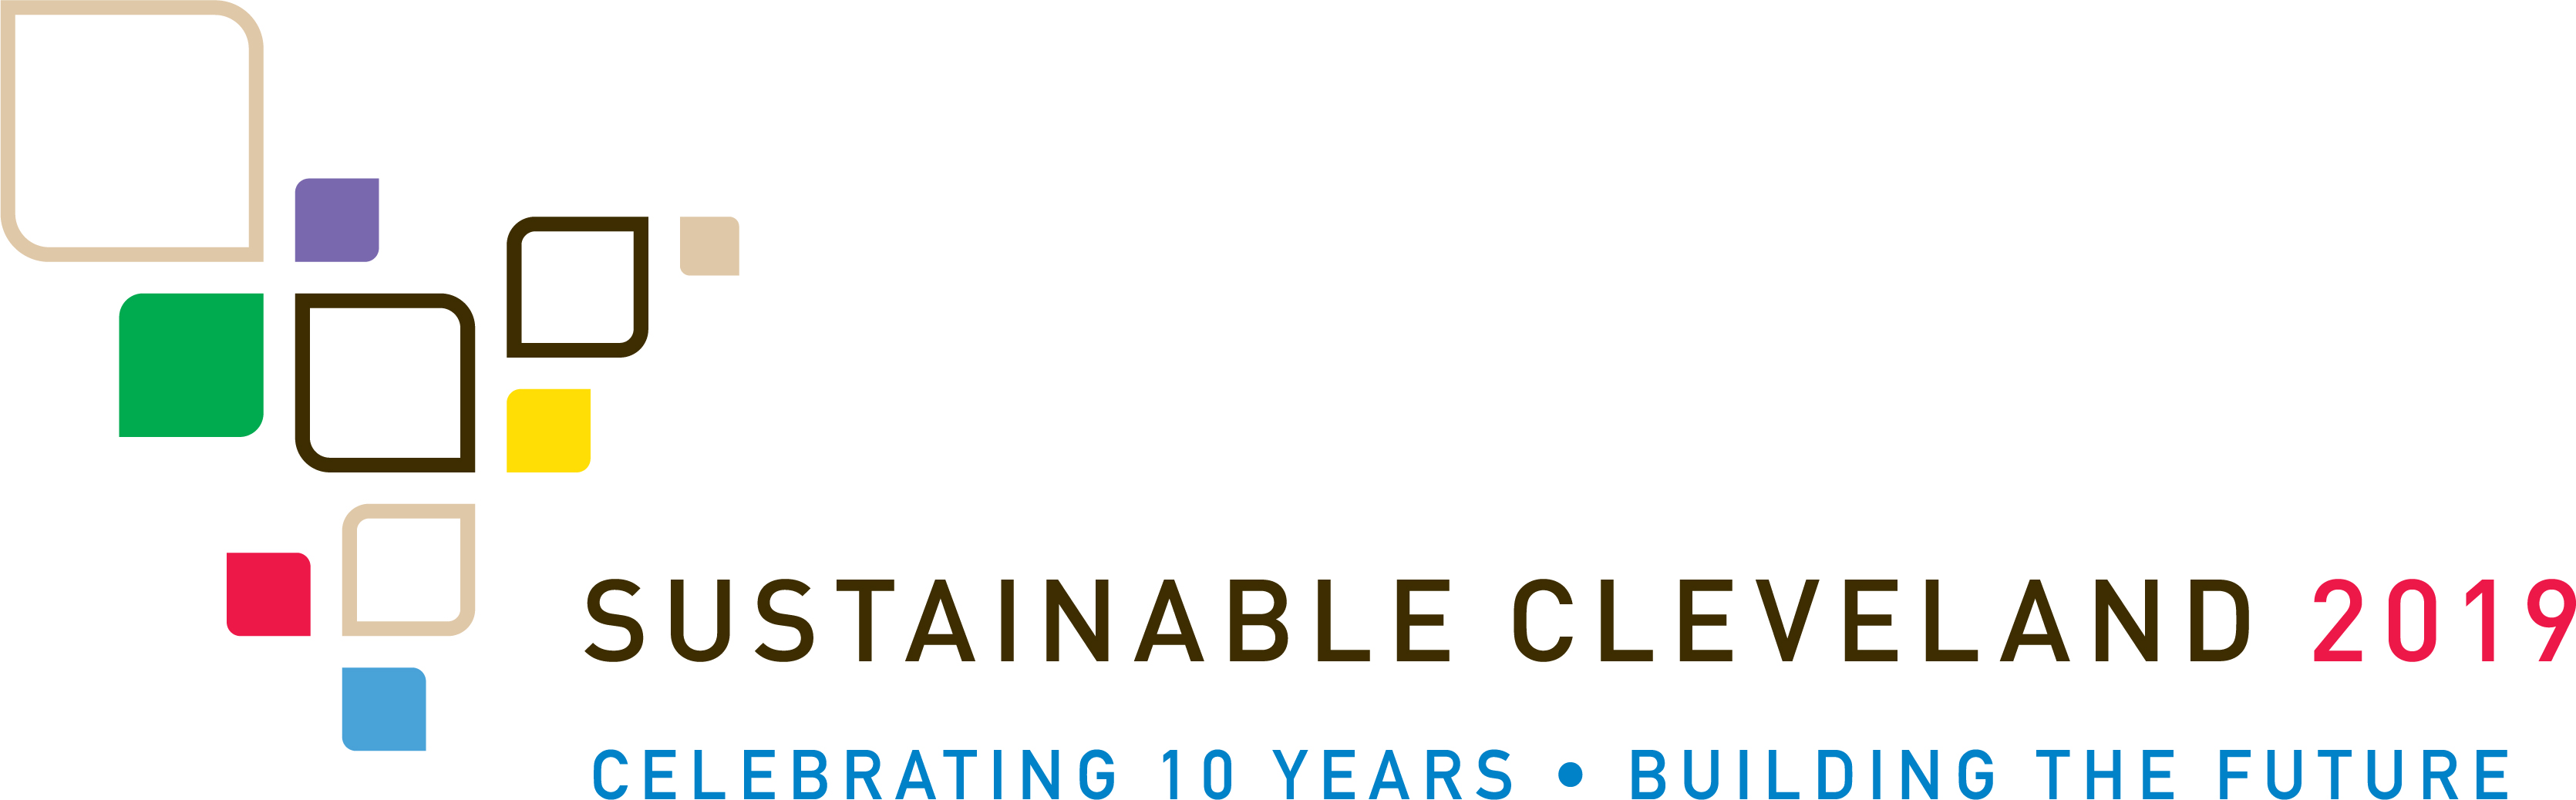 SUSTAINABLE_CLE_Logo_PrimaryBuildFuture.jpg